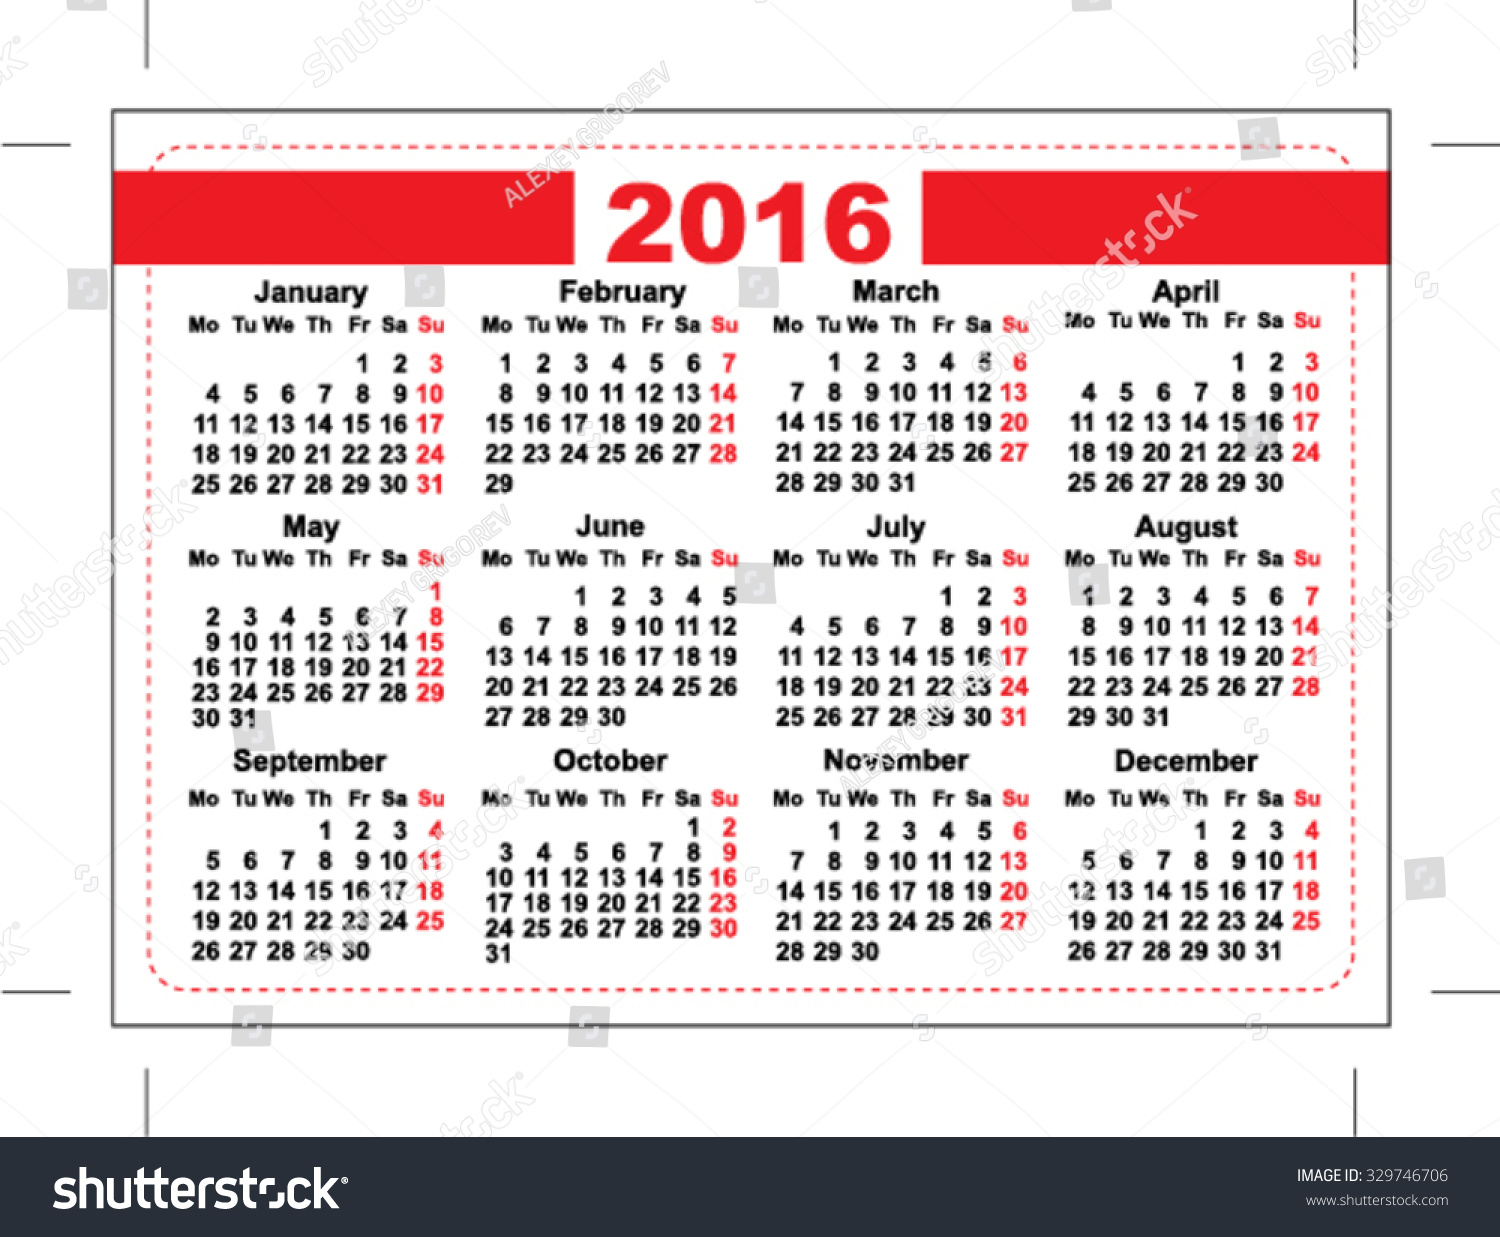 2016 Pocket Calendar Template Grid Horizontal Stock Vector